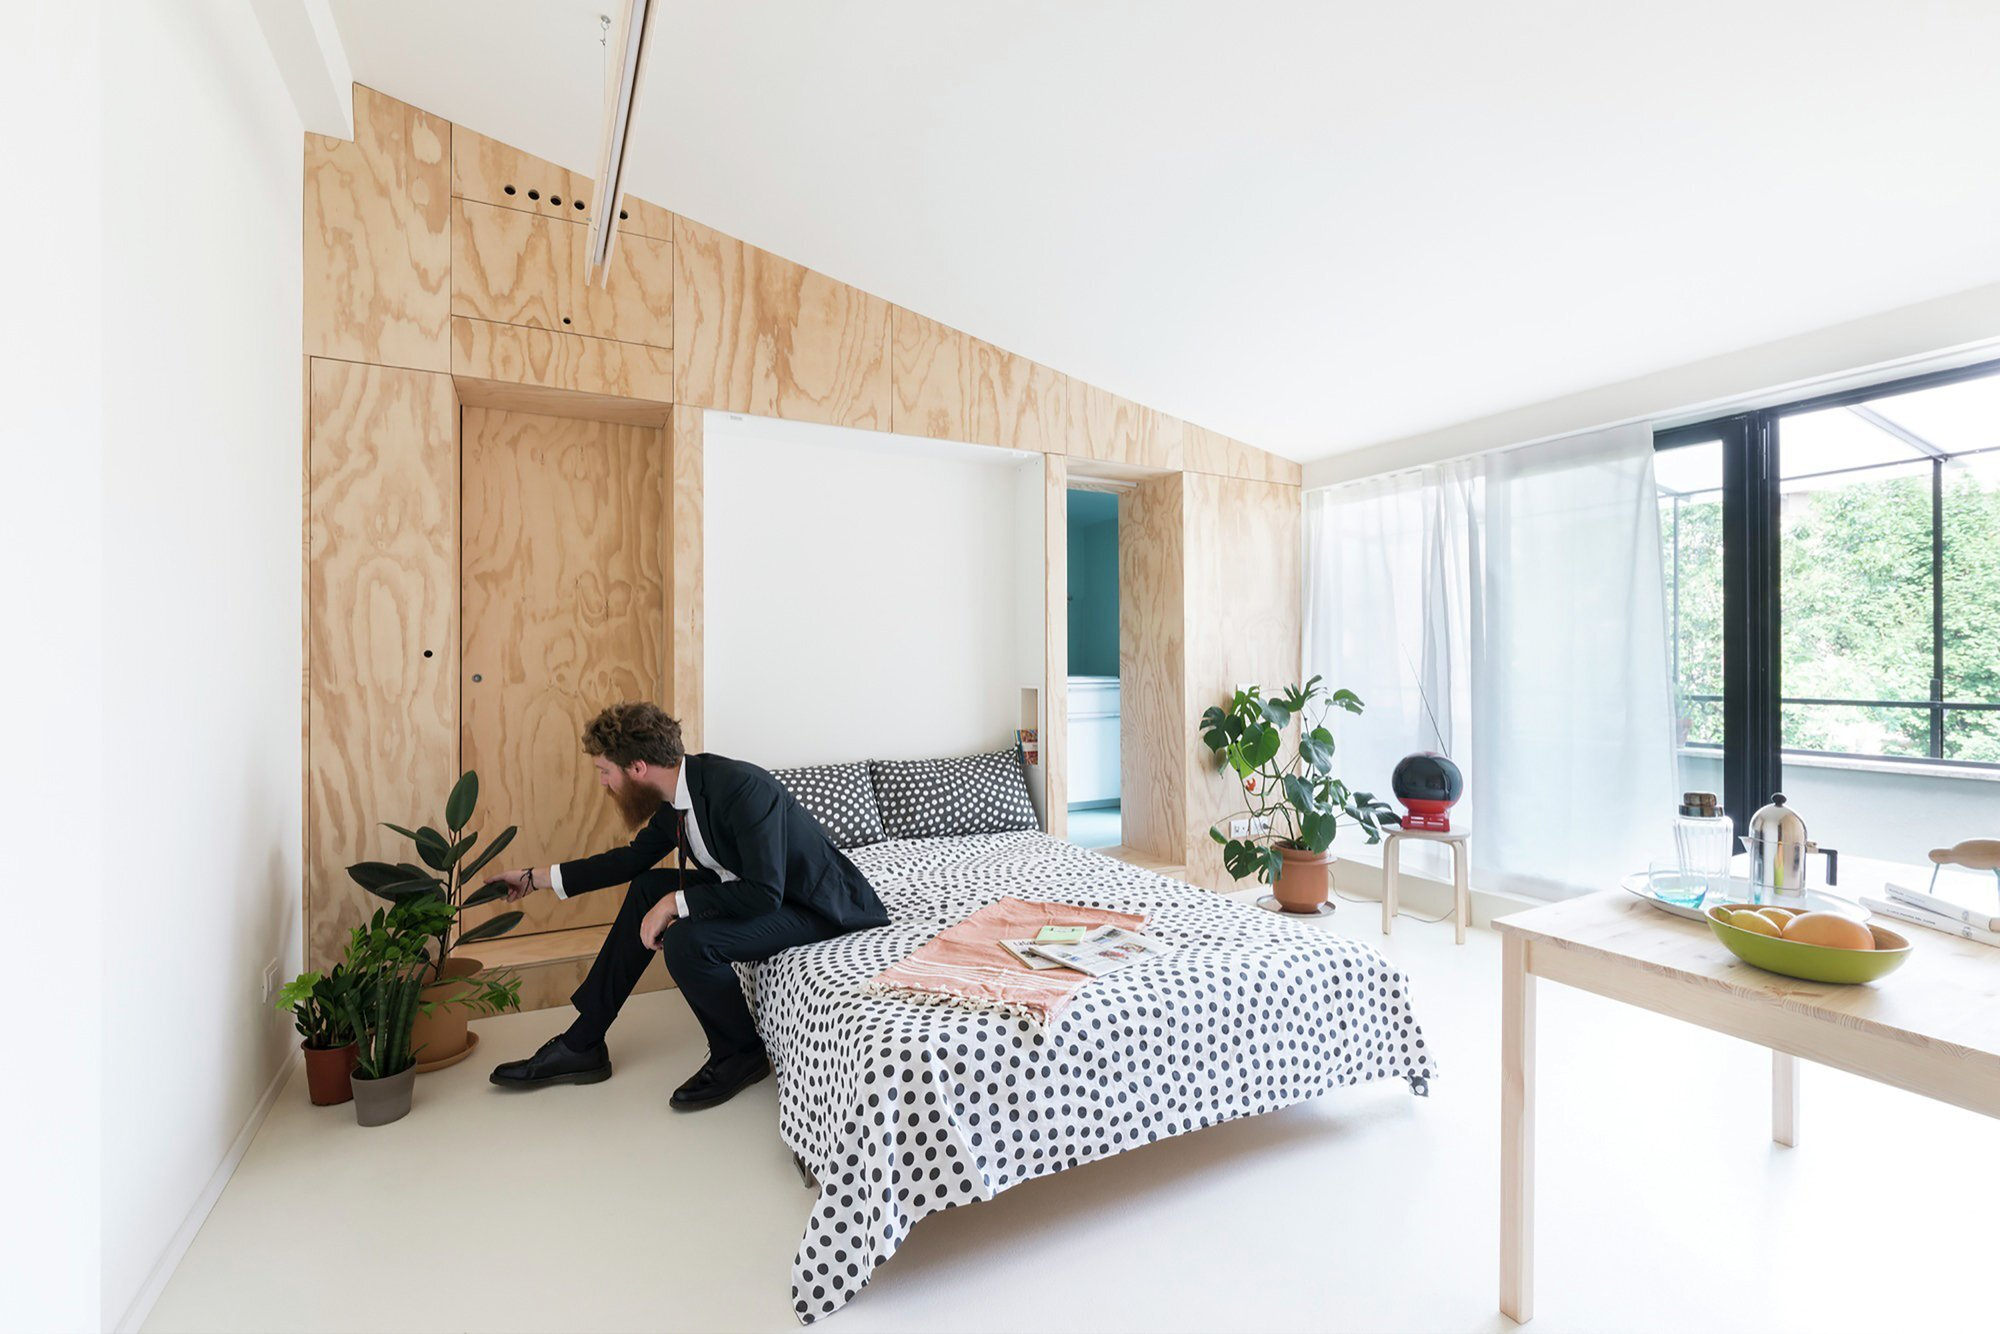 Batipin Flat - studioWOK - Italy - Converted to Bedroom - Humble Homes